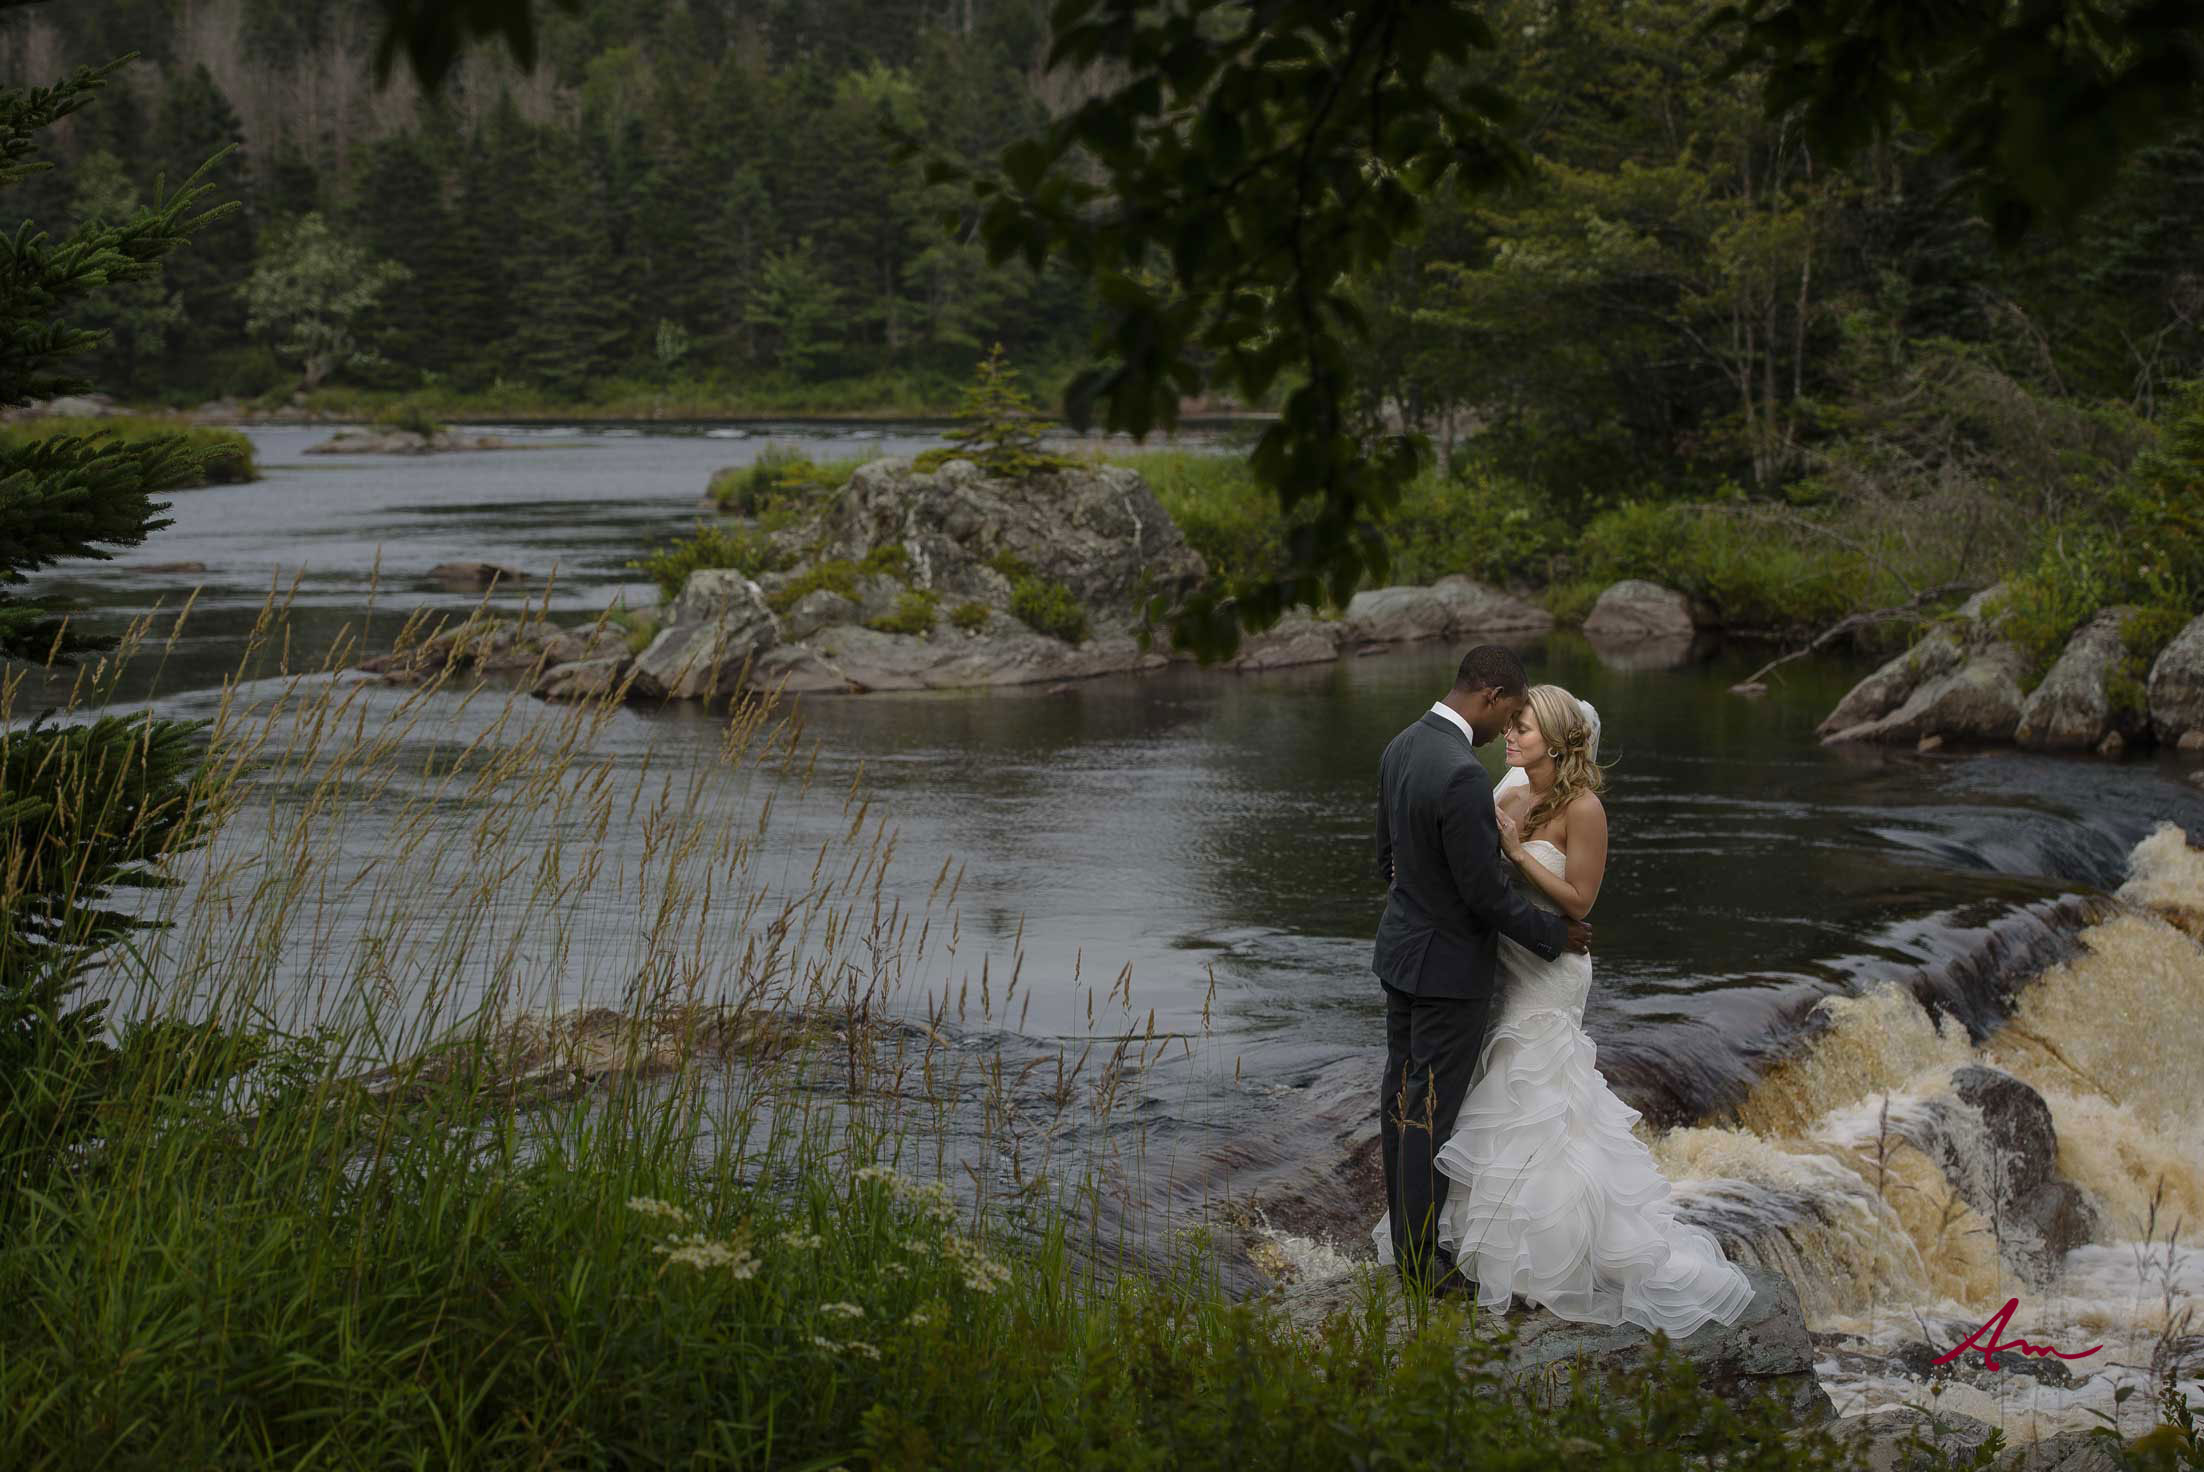 Liscombe-wedding-couple-river.jpg